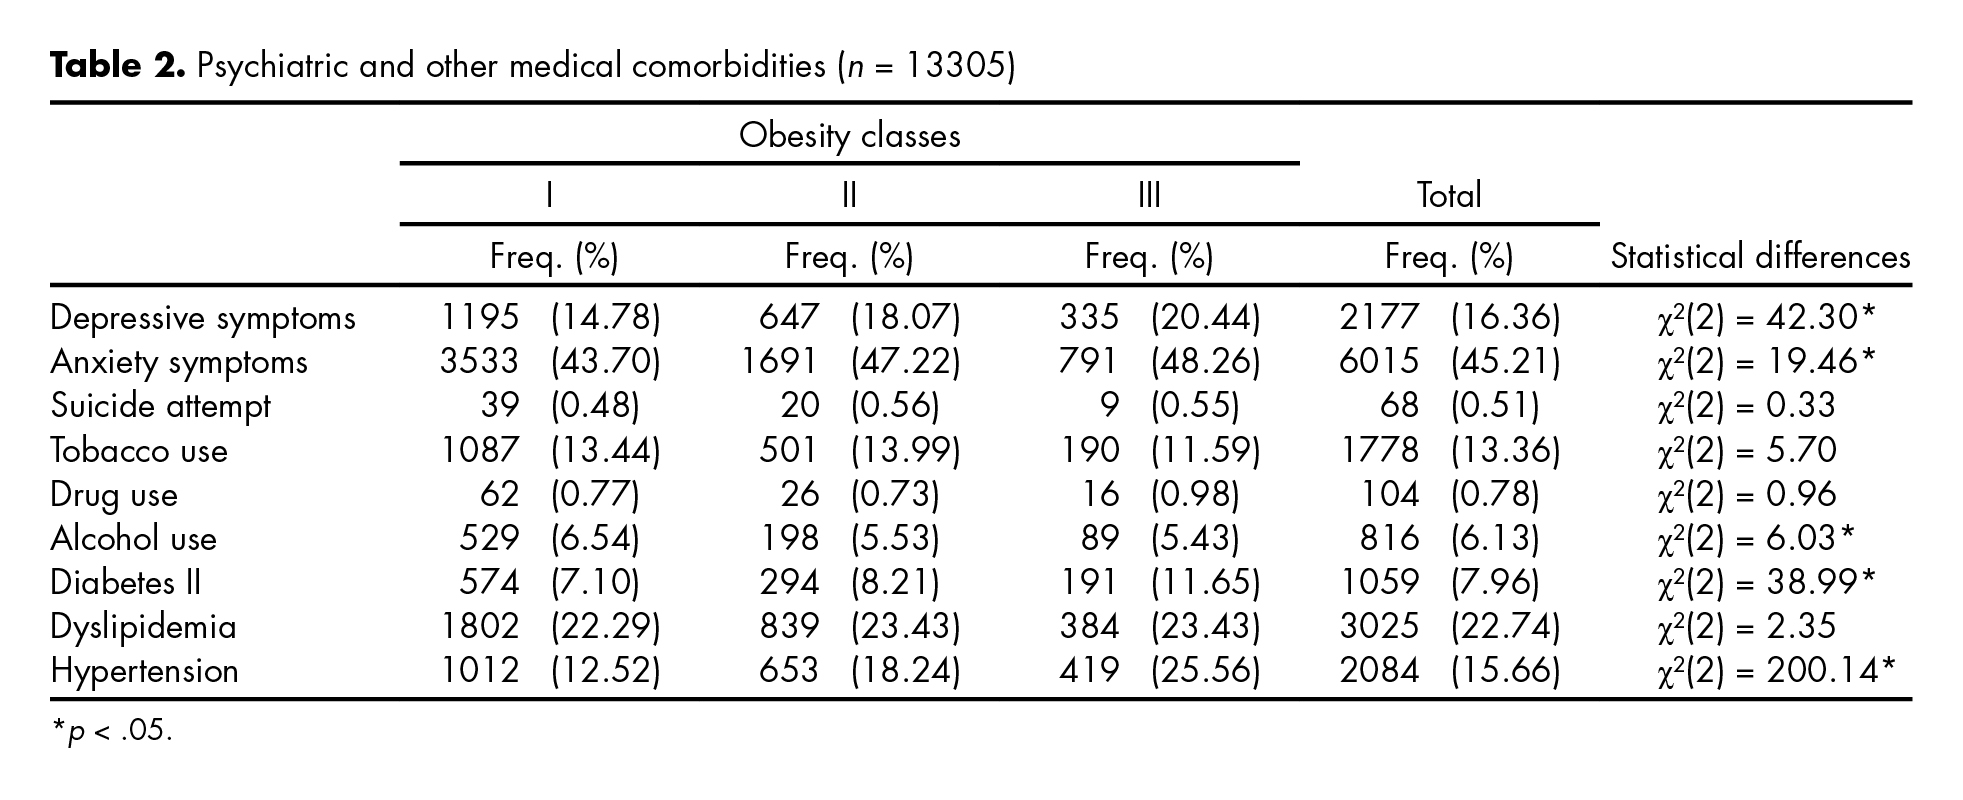 Psychiatric and other medical comorbidities (n = 13305)